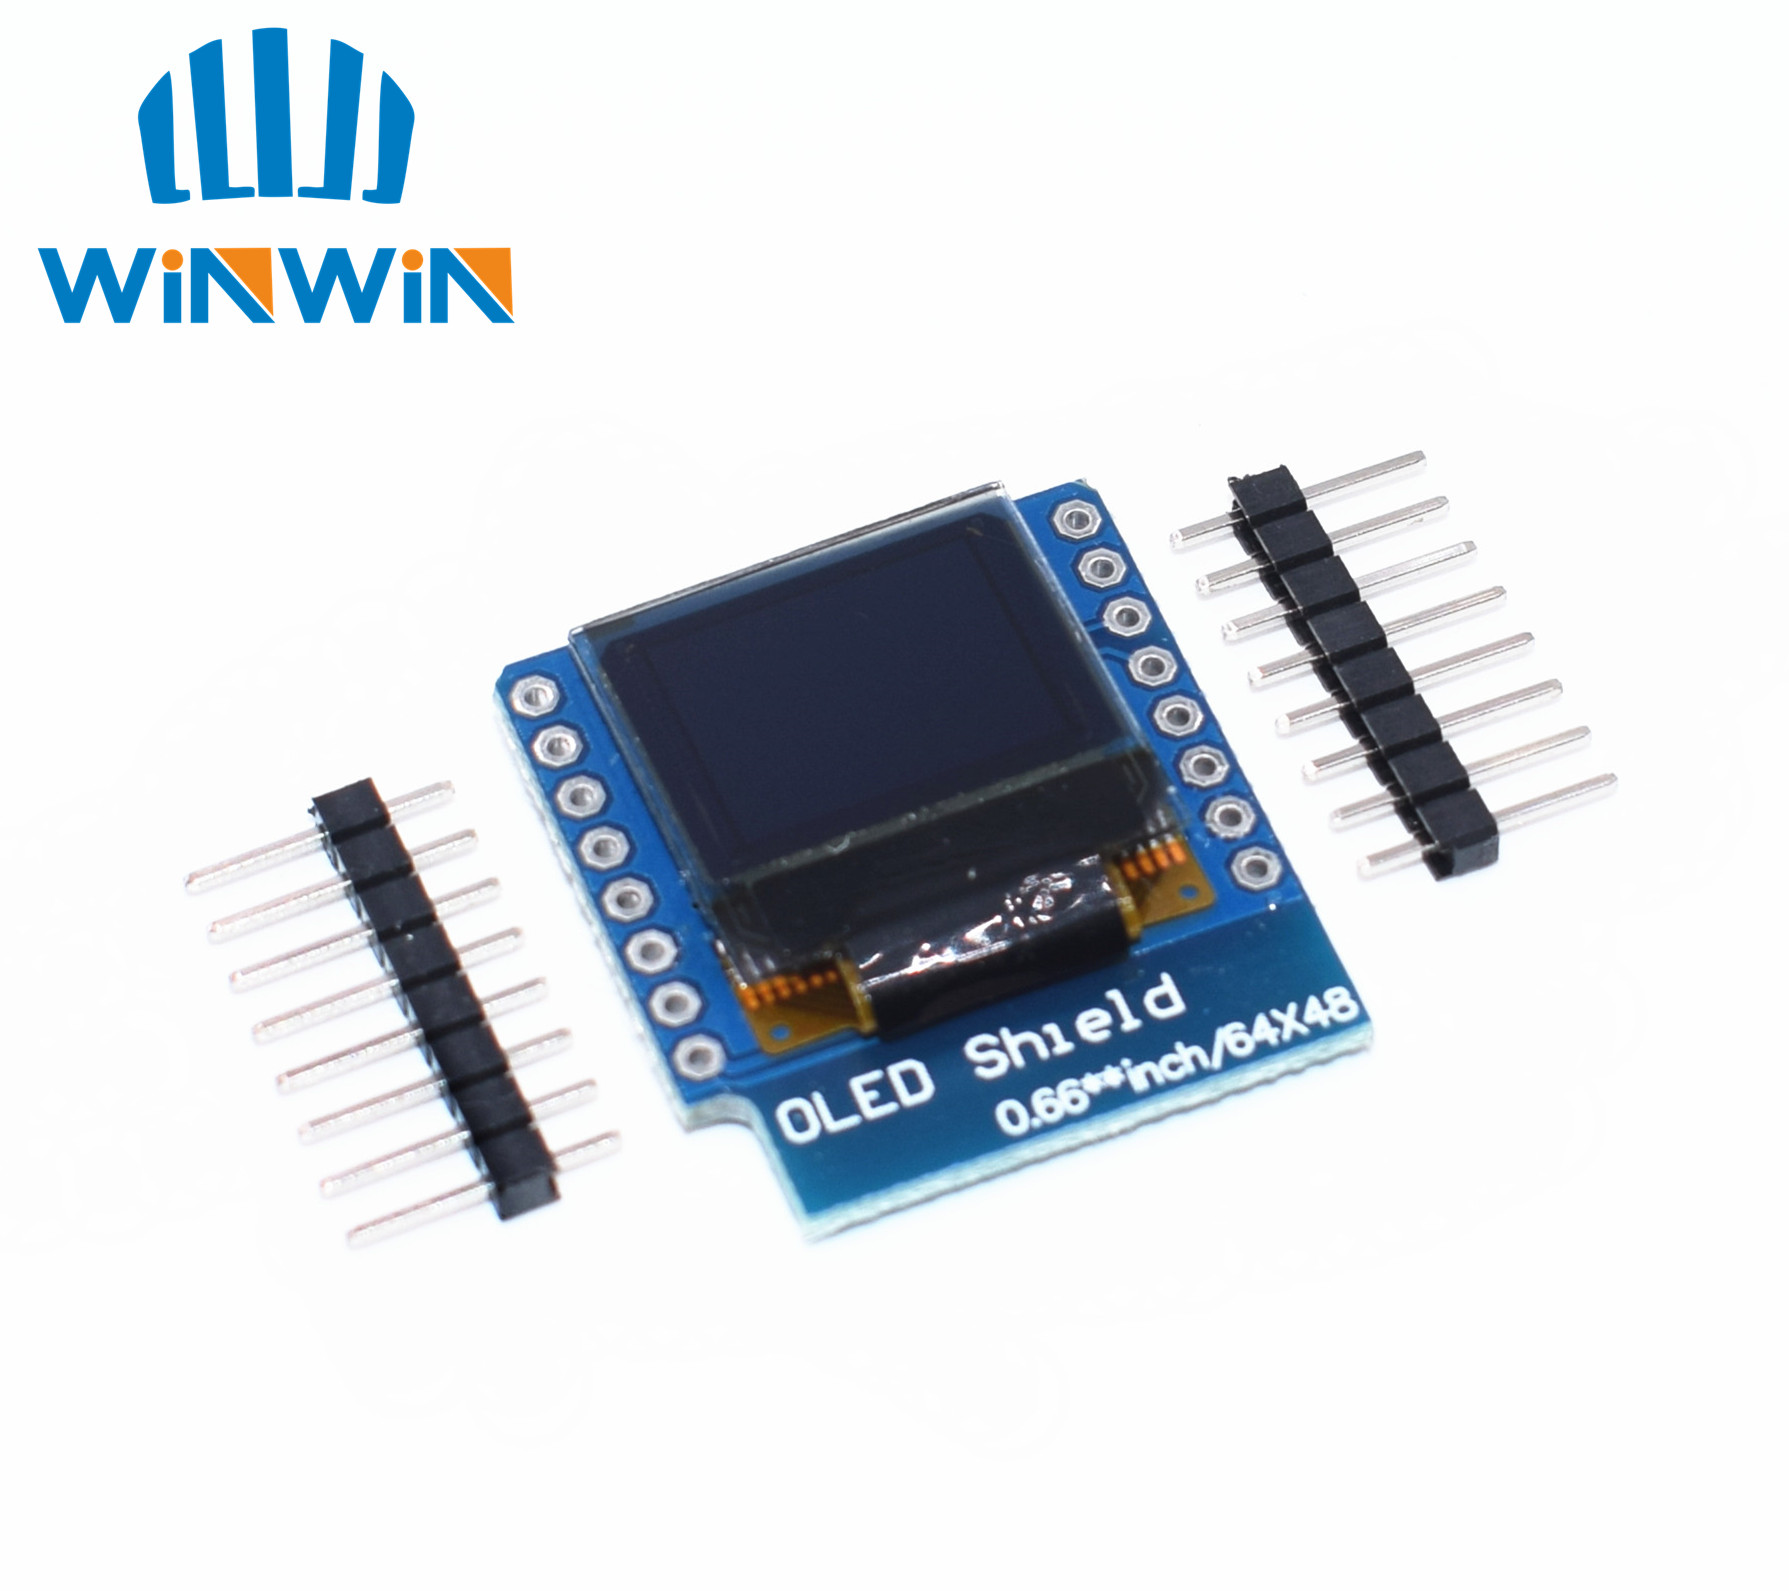 D04 0.66 inch 64X48 IIC I2C OLED LED LCD Dispaly Shield Compatible 0.66 inch Display for WEMOS D1 MINI ESP32D04 0.66 inch 64X48 IIC I2C OLED LED LCD Dispaly Shield Compatible 0.66 inch Display for WEMOS D1 MINI ESP32